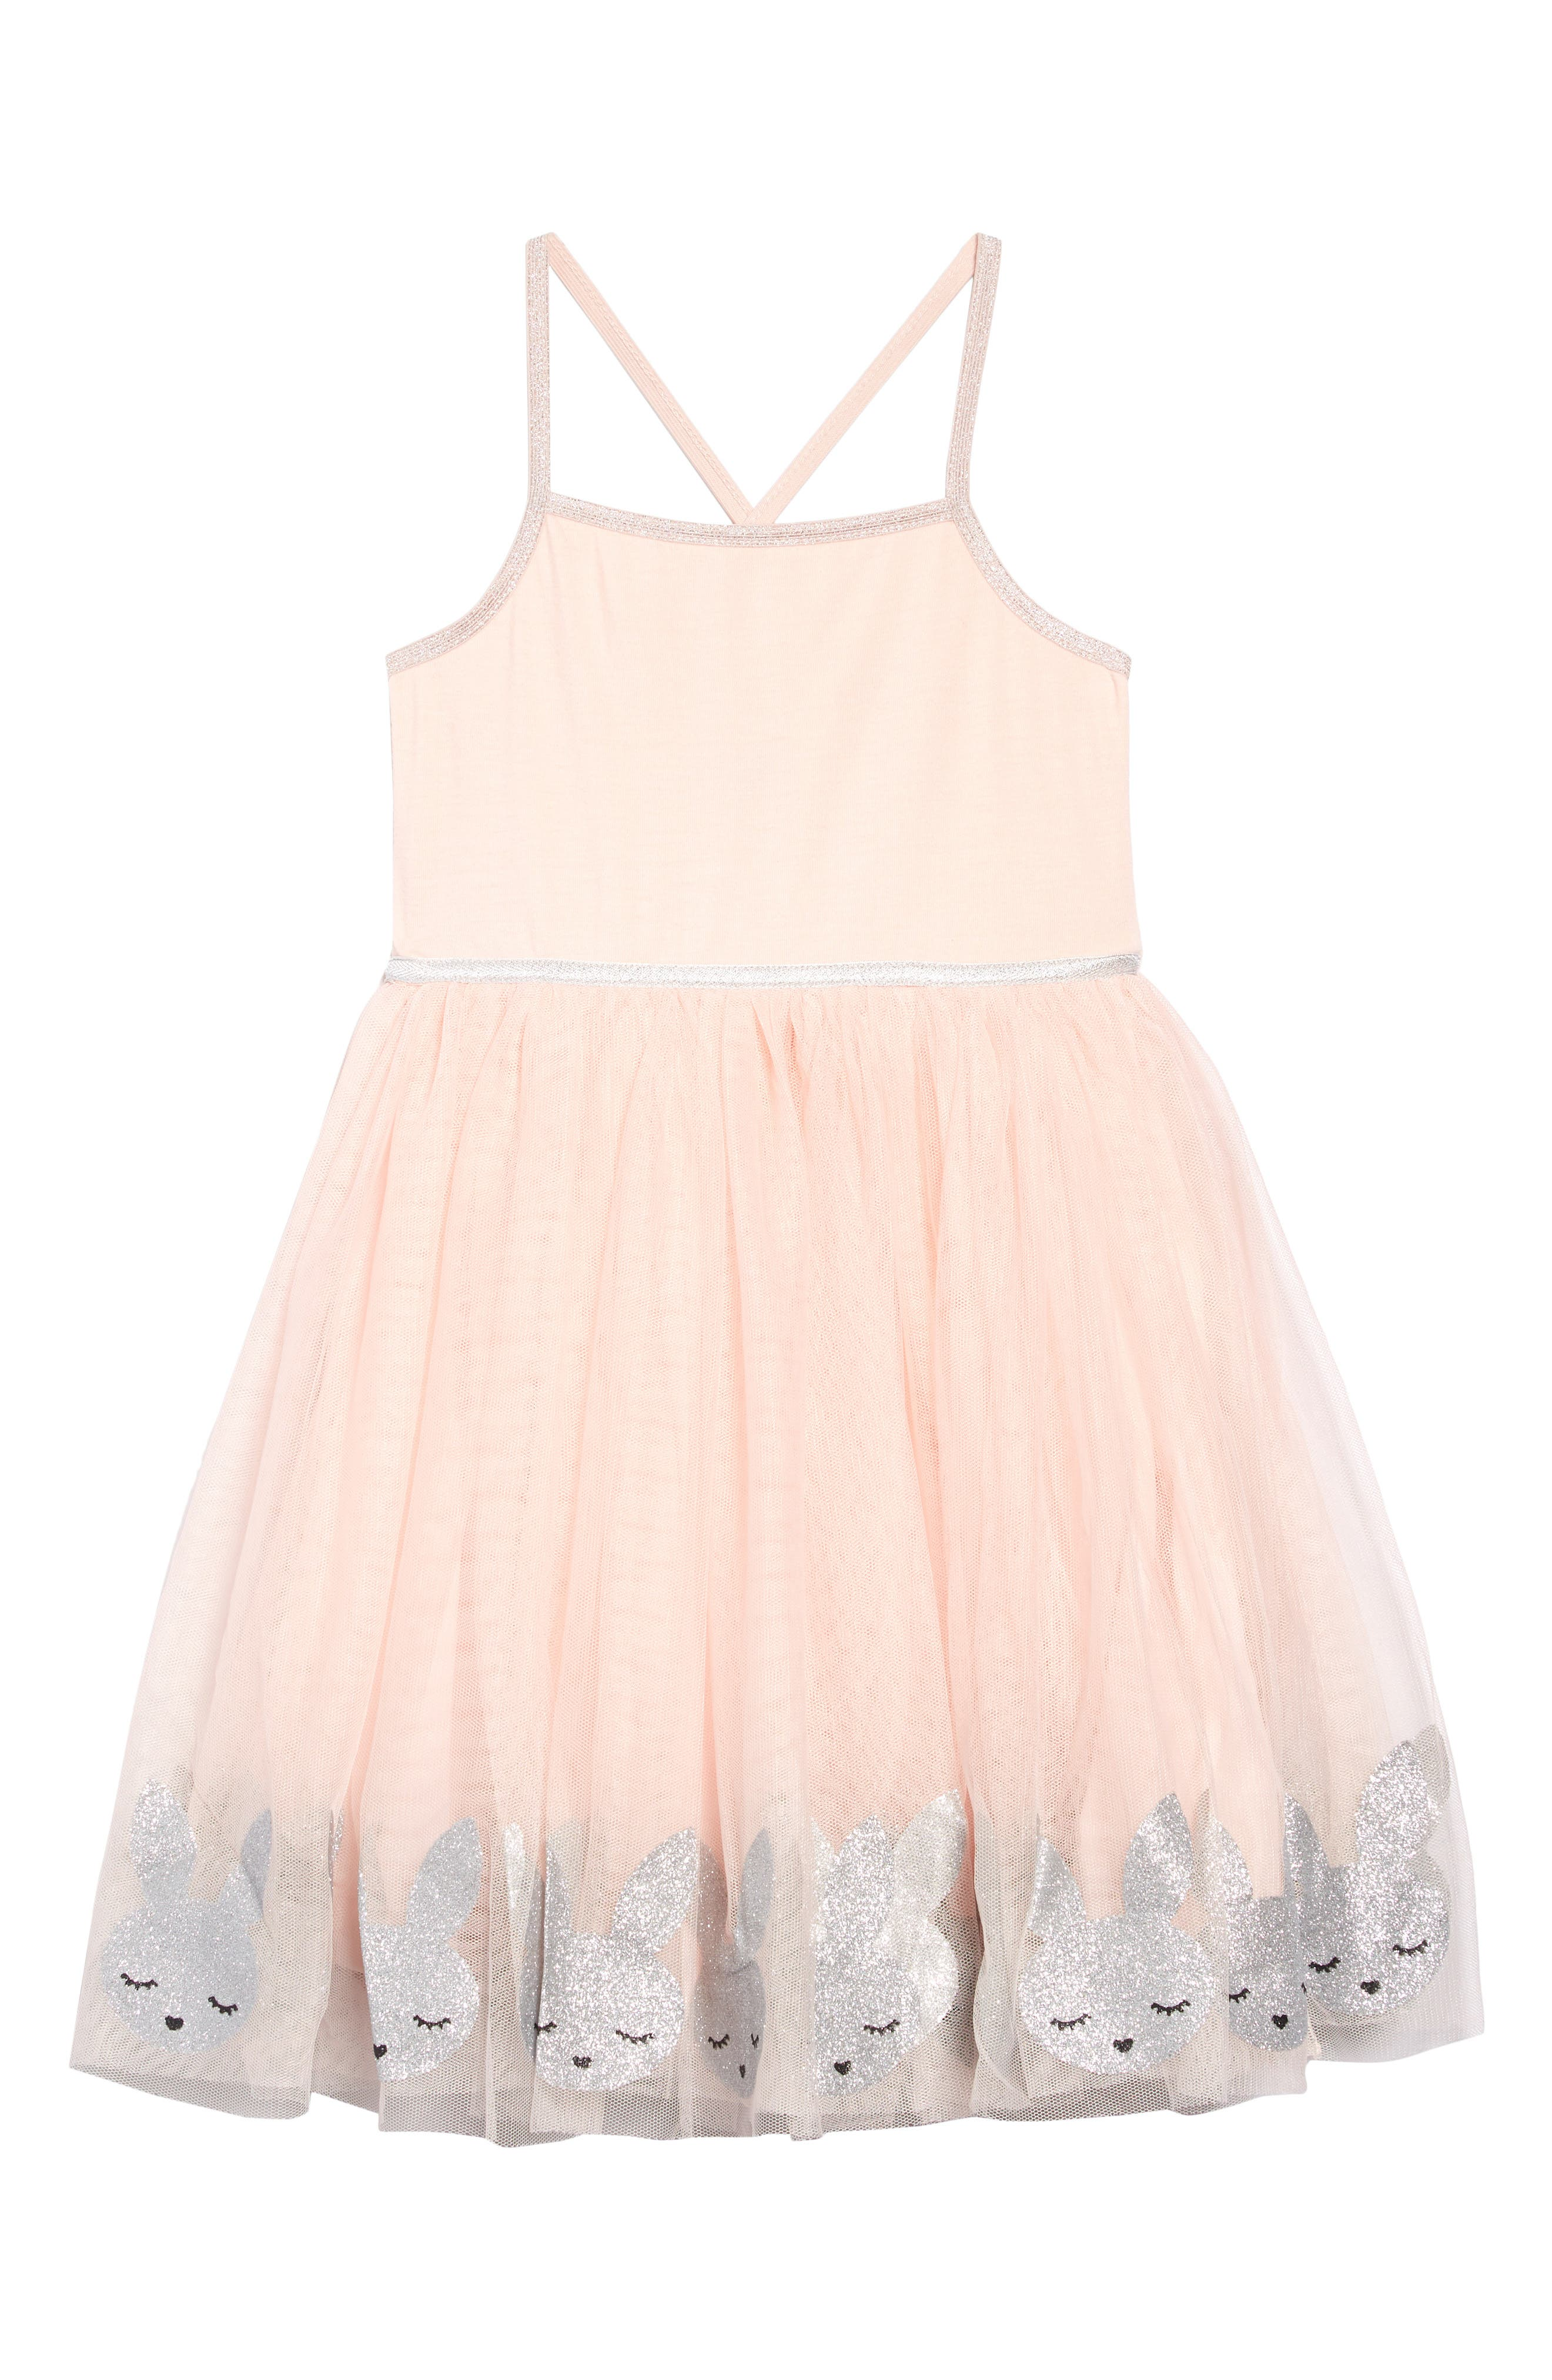 Toddler Girls Zunie Border Bunny Fit  Flare Tulle Dress Size 3T  Pink